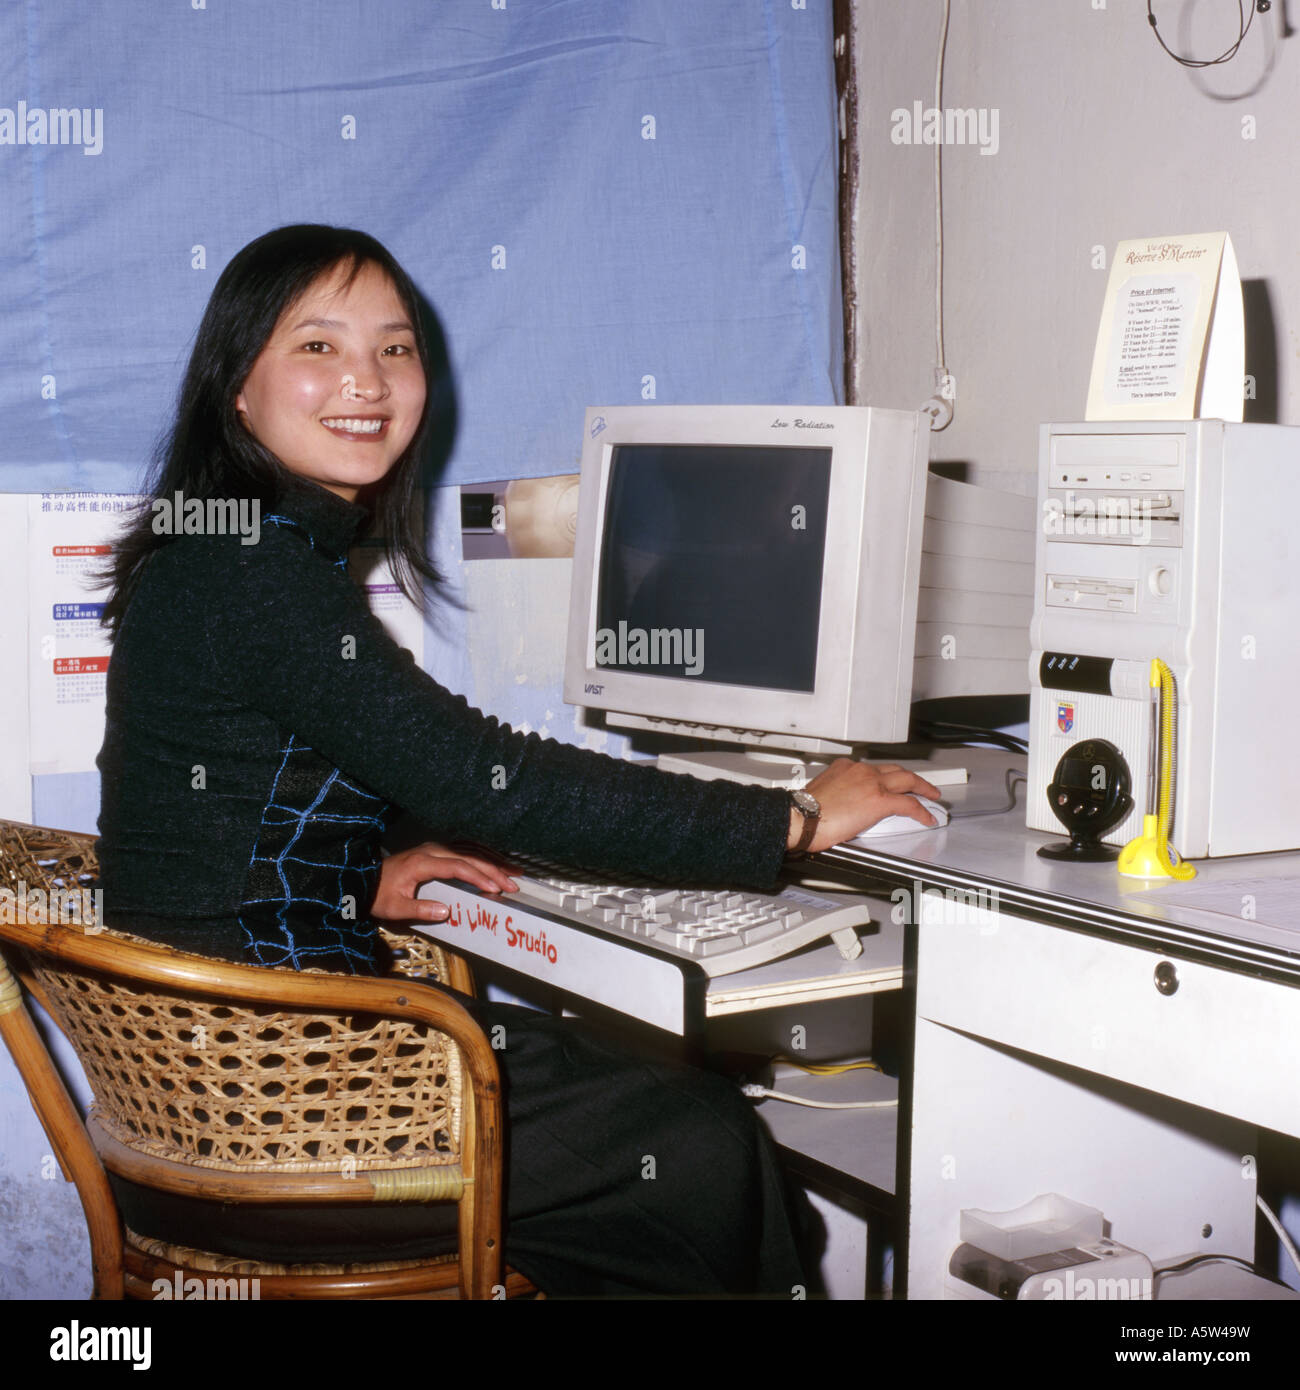 Smiling,pretty,fashionable modern local girl using an internet cafe computer,Dali,Yunnan Province,China. Stock Photo